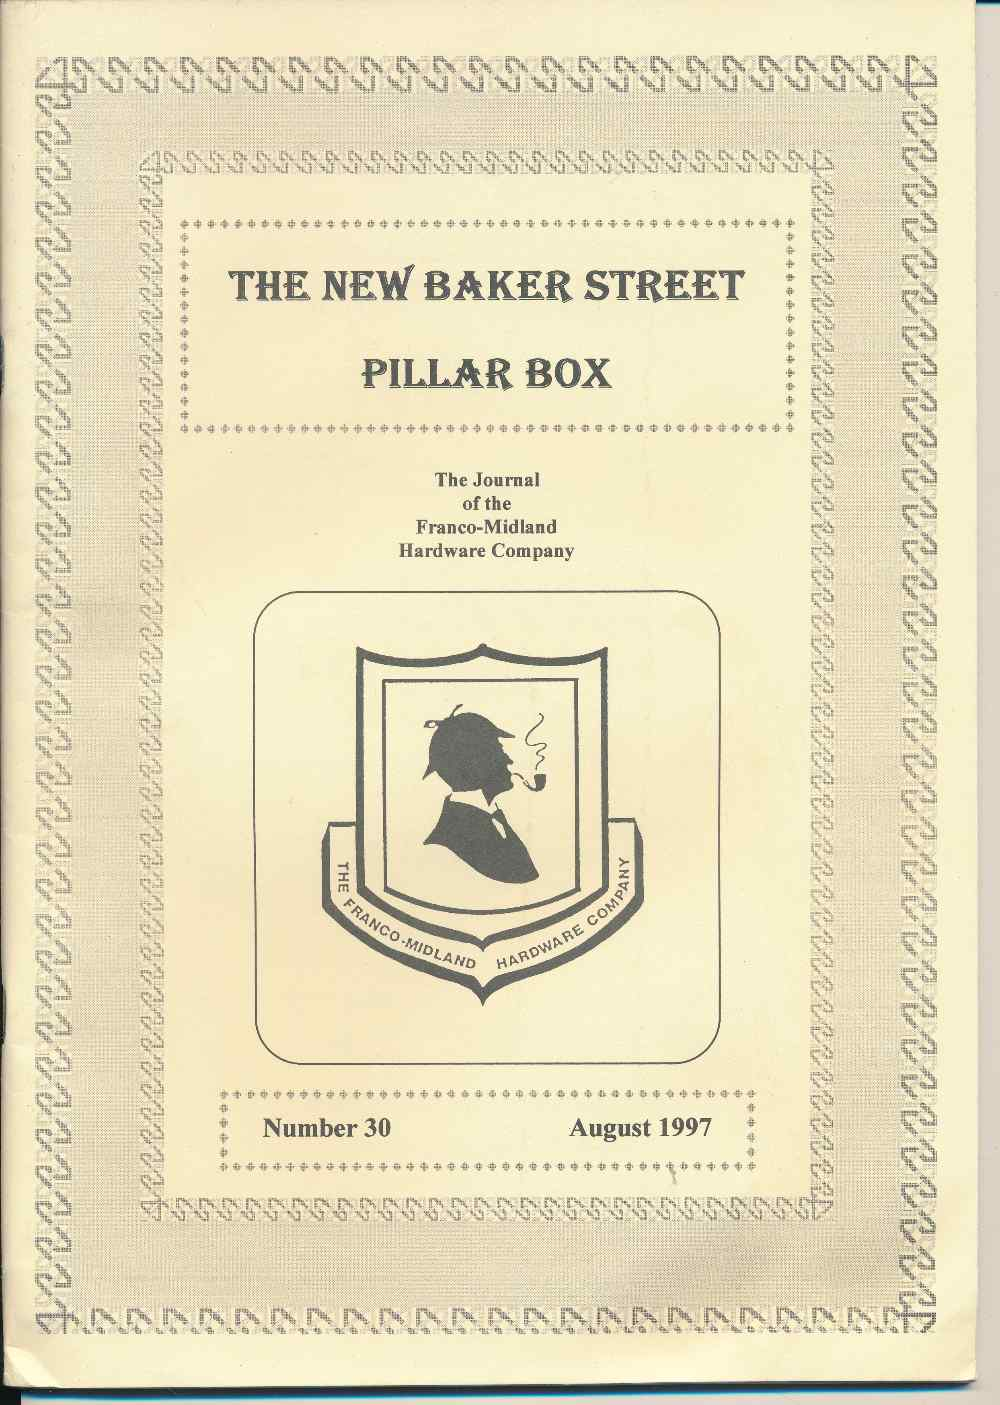 The New Baker Street Pillar Box